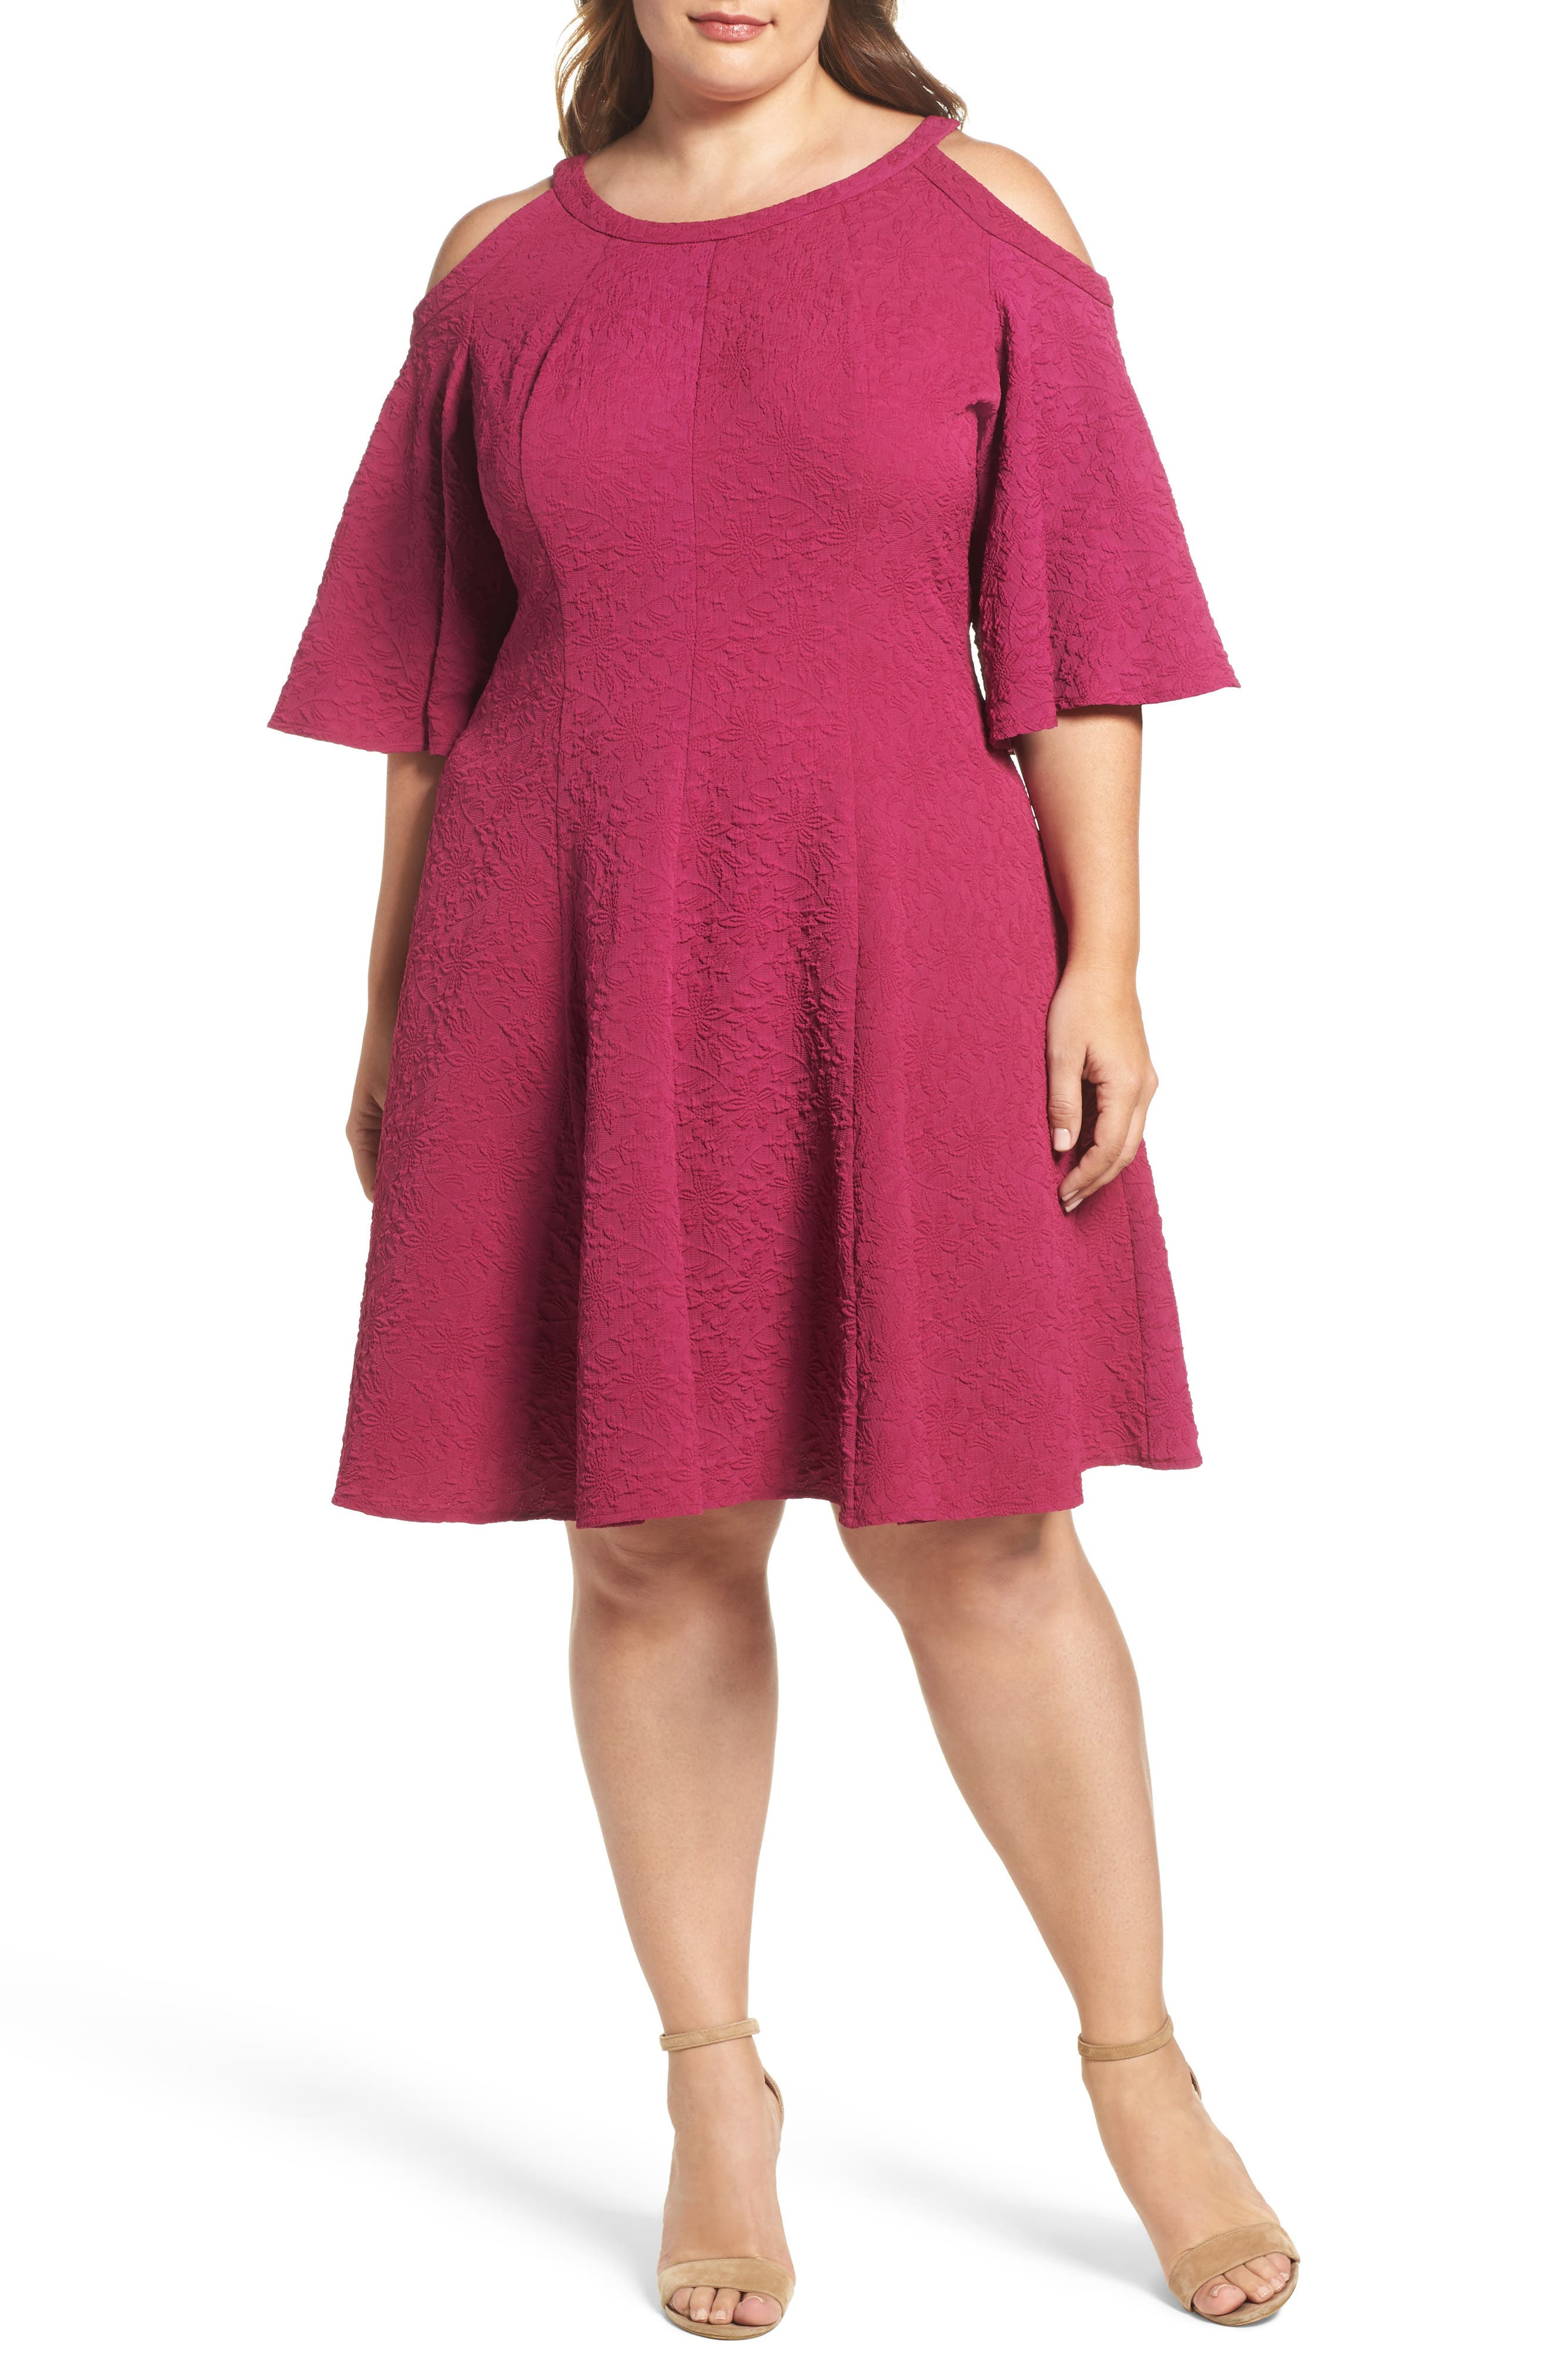 Gabby Skye Cold Shoulder Jacquard Fit & Flare Dress (Plus Size)